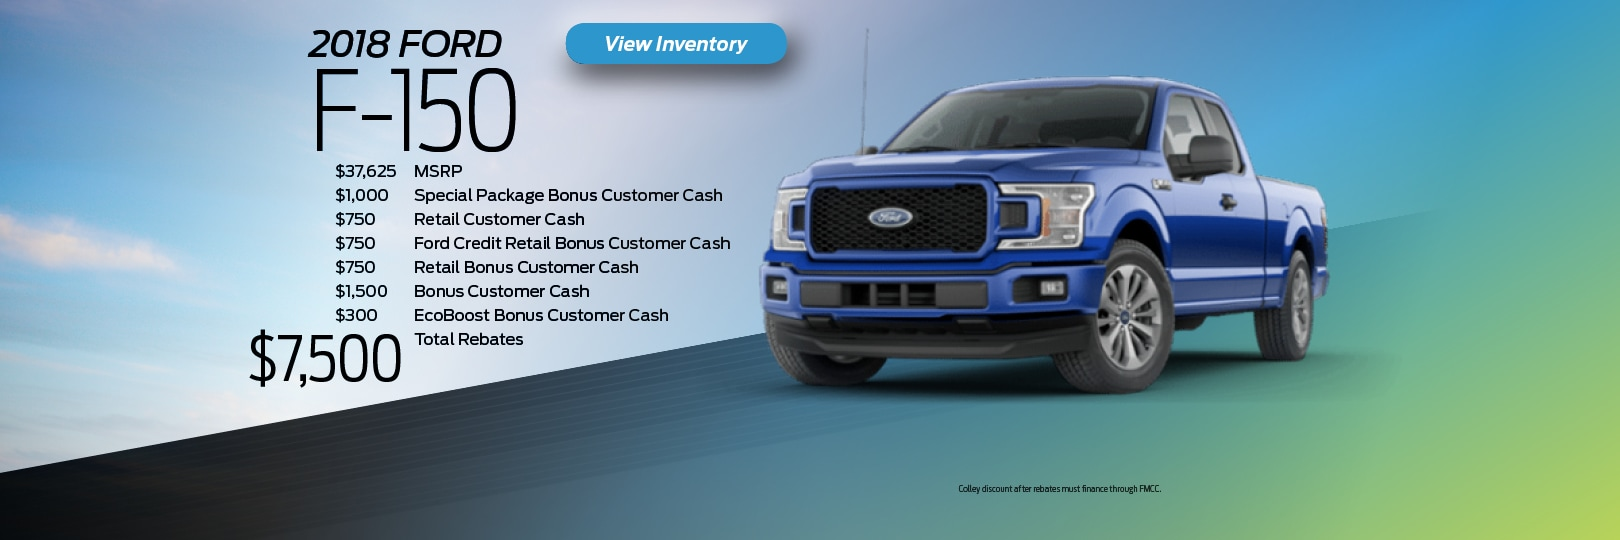 New Ford & Used Car Dealer in Glendora, CA - Colley Ford Auto Center